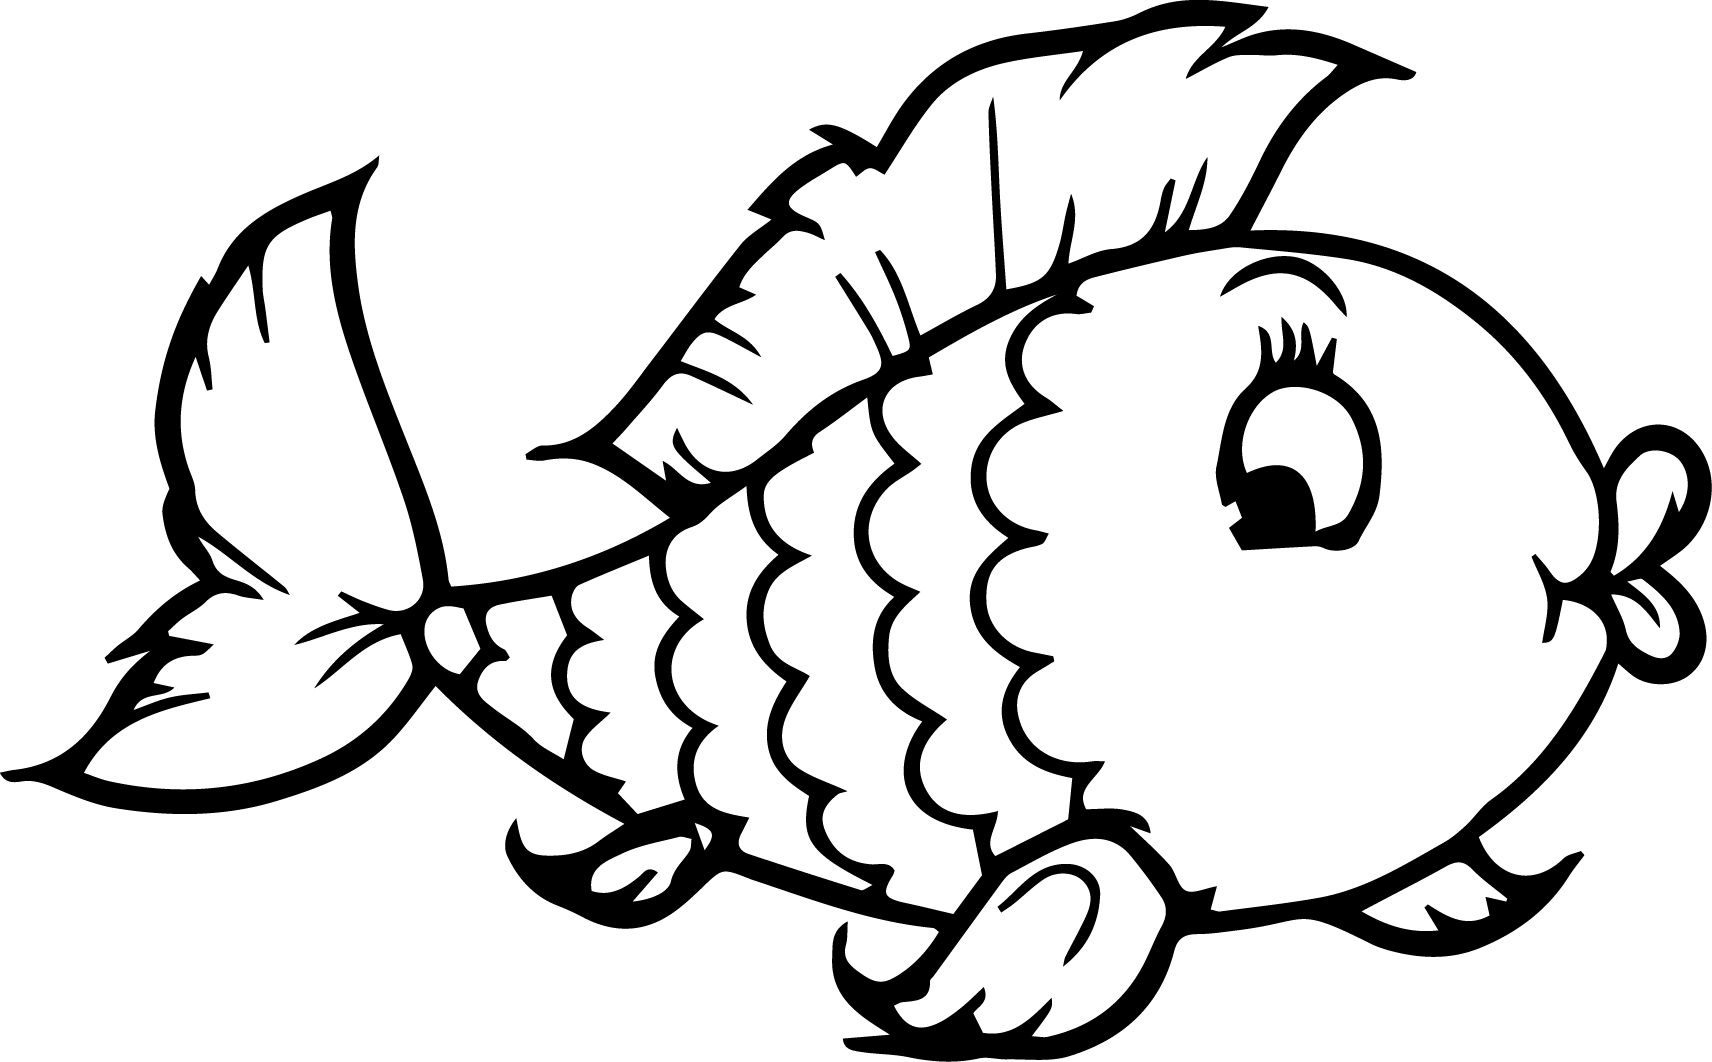 Coloring Pages : Pin Byradeep Gamage On Google Fish Coloringageages.